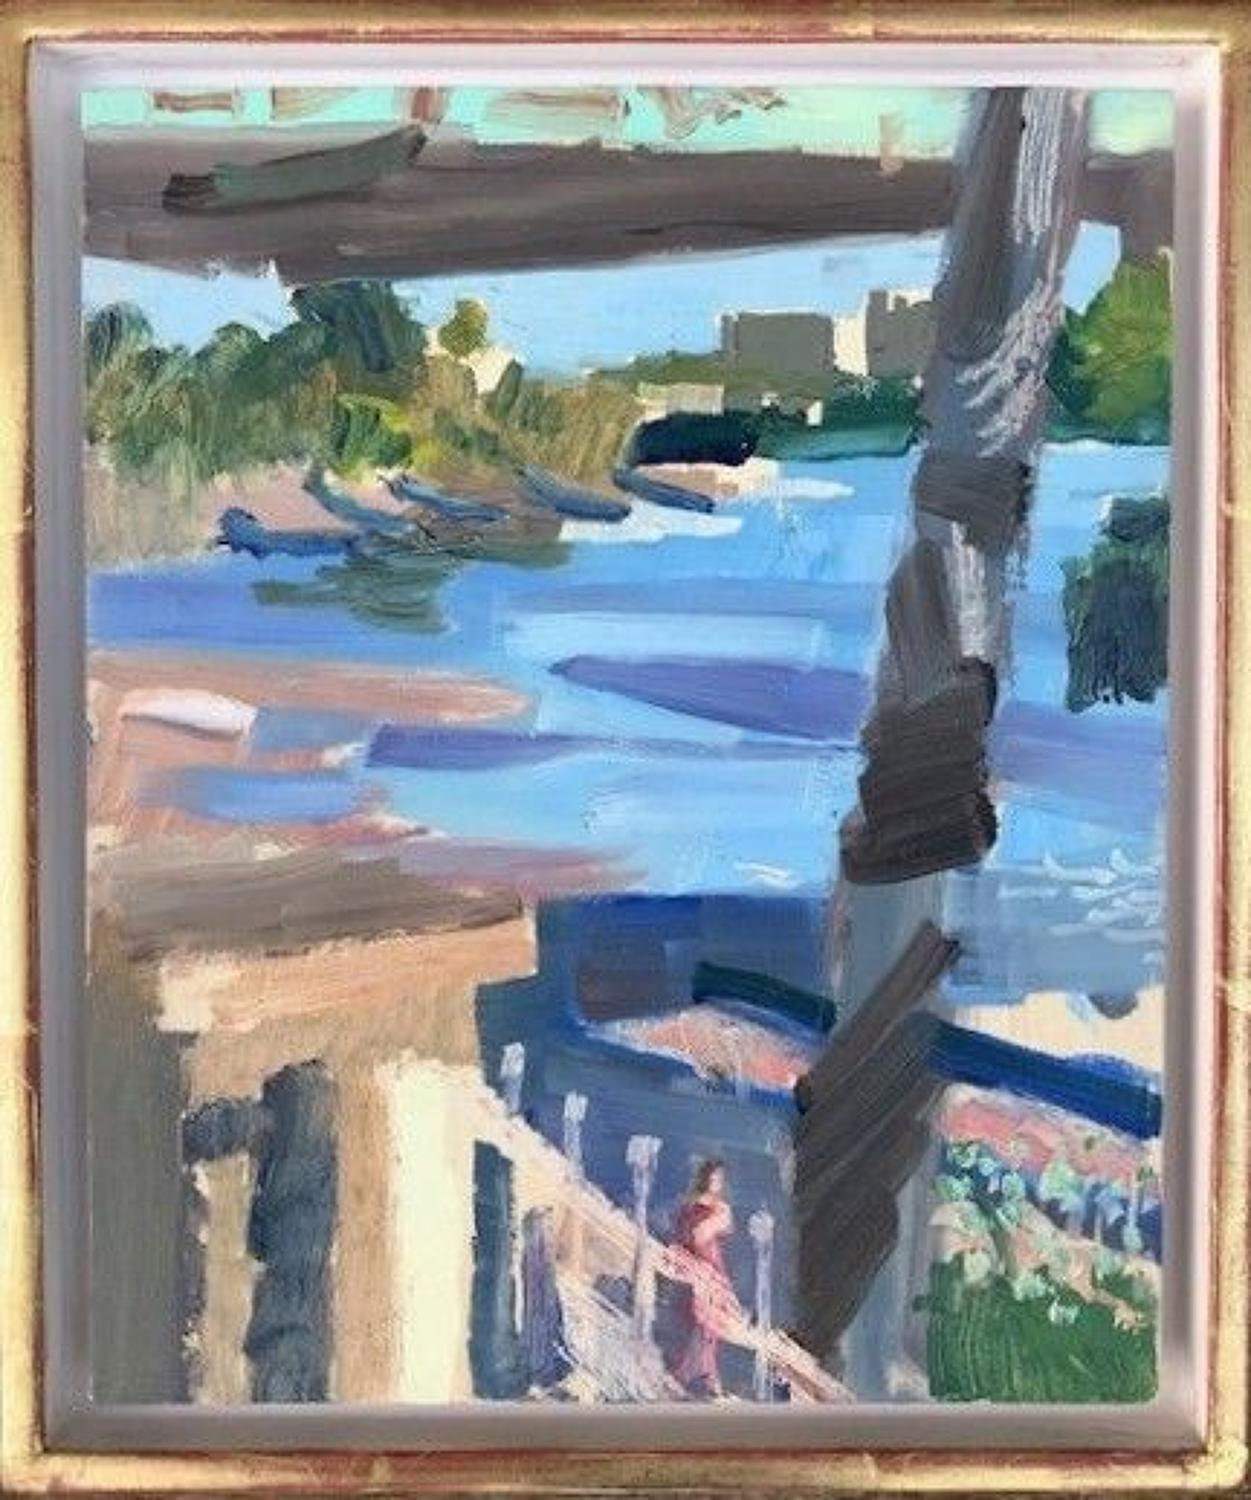 David Parfitt. NEAC. Blue Thames, midummer evening.